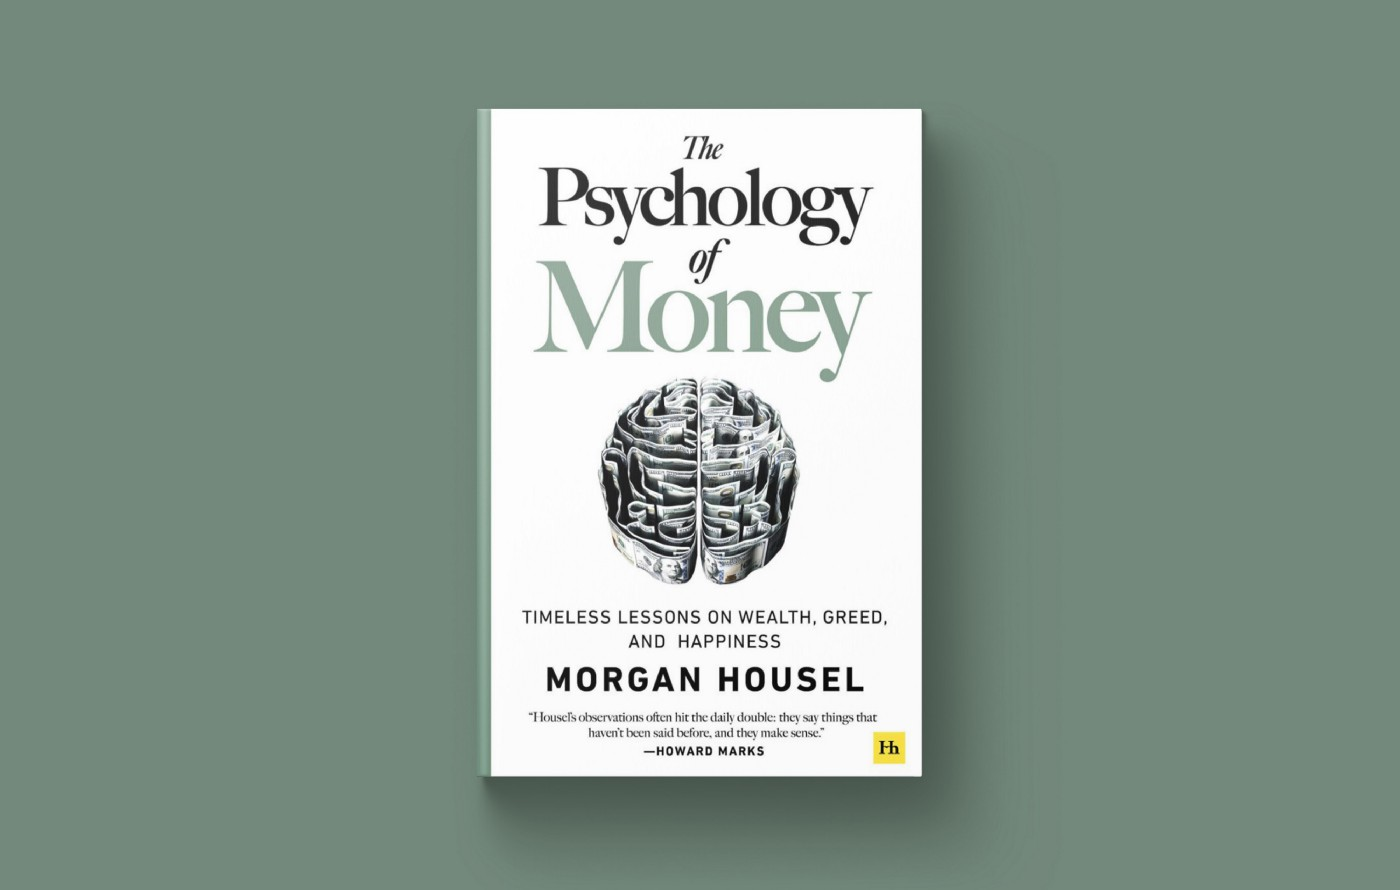 the psychology of money book by morgan housel